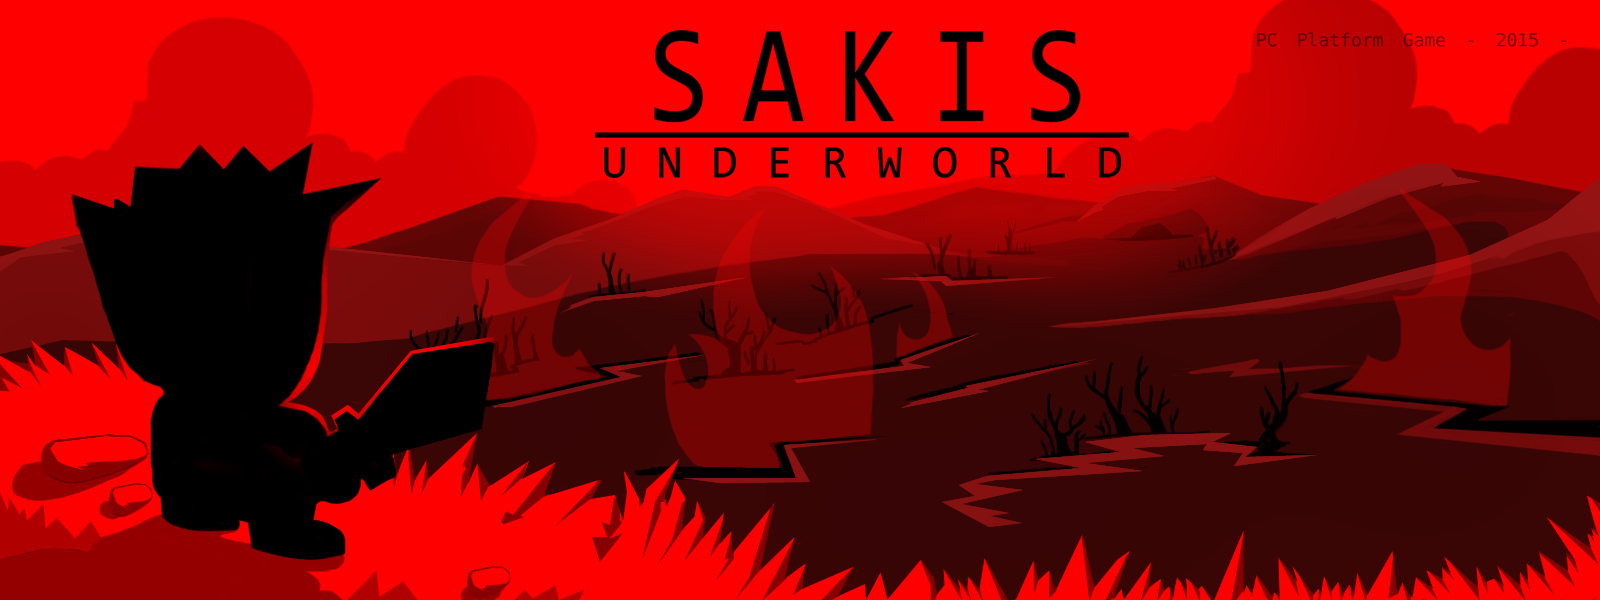 SAKIS - Underworld